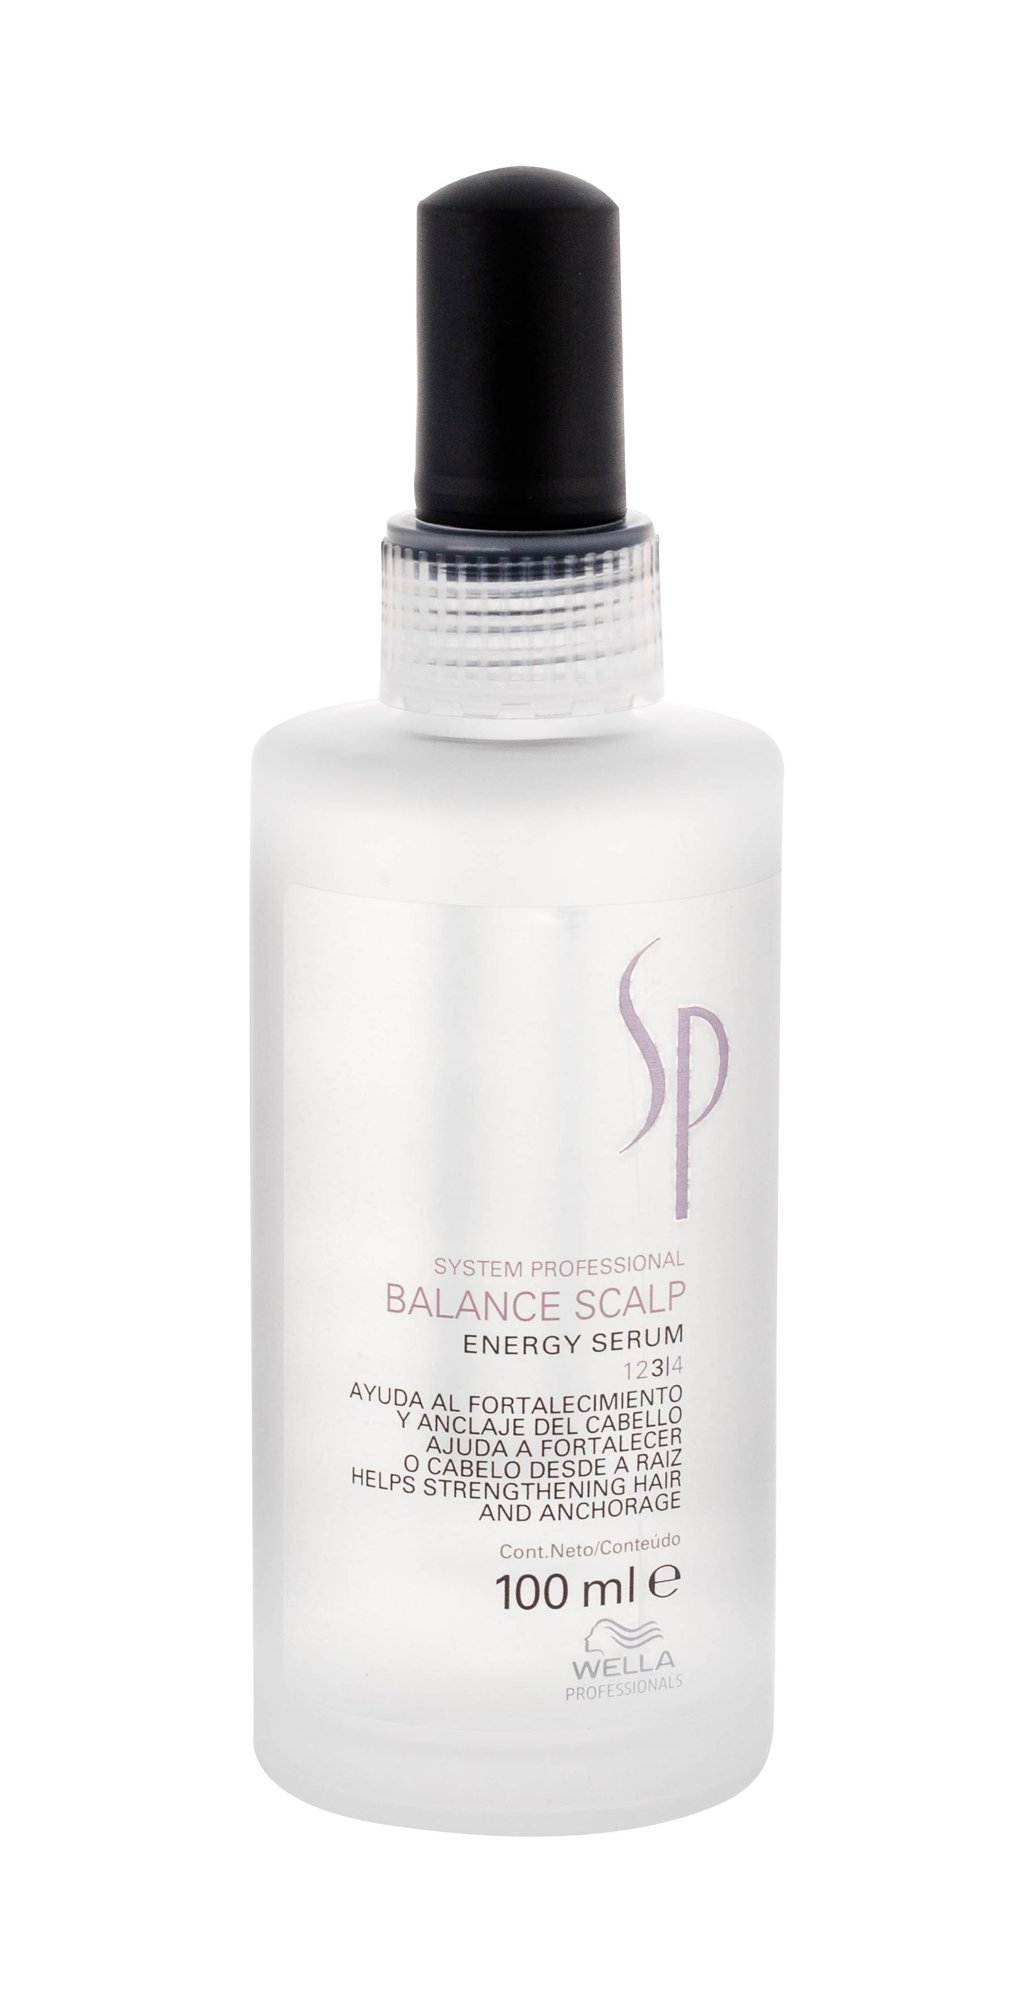 Wella SP Balance Scalp Hair Oils and Serum 100ml